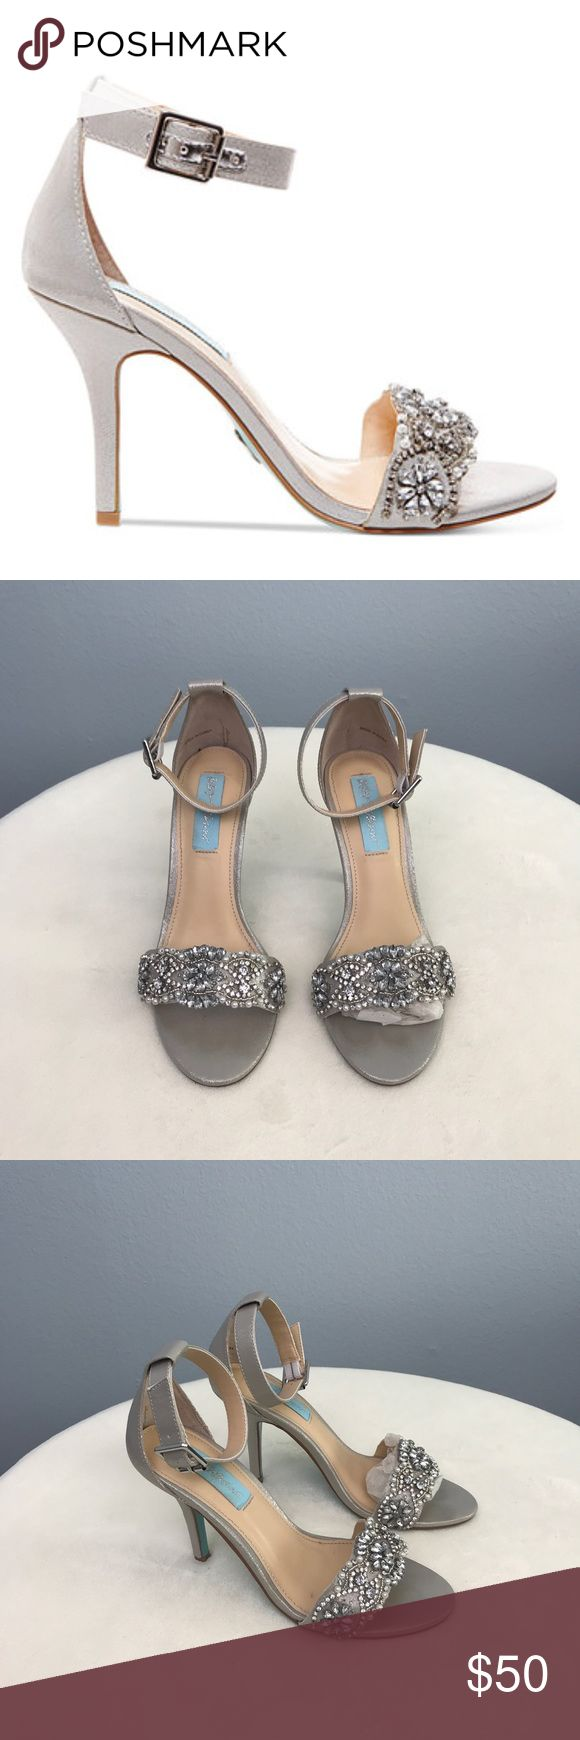 Juno silver rhinestone pearl strapped heels sandal See pics for details. Worn once for a few hours at a wedding.  Still sold at Macy's for $130 plus!  I have the box but will be shipped without to keep shipping cost down.  Will be shipped with replacement heel caps.  3 3/4' heel  Ball 3'  Length wall to toe 9' Betsey Johnson Shoes Heels